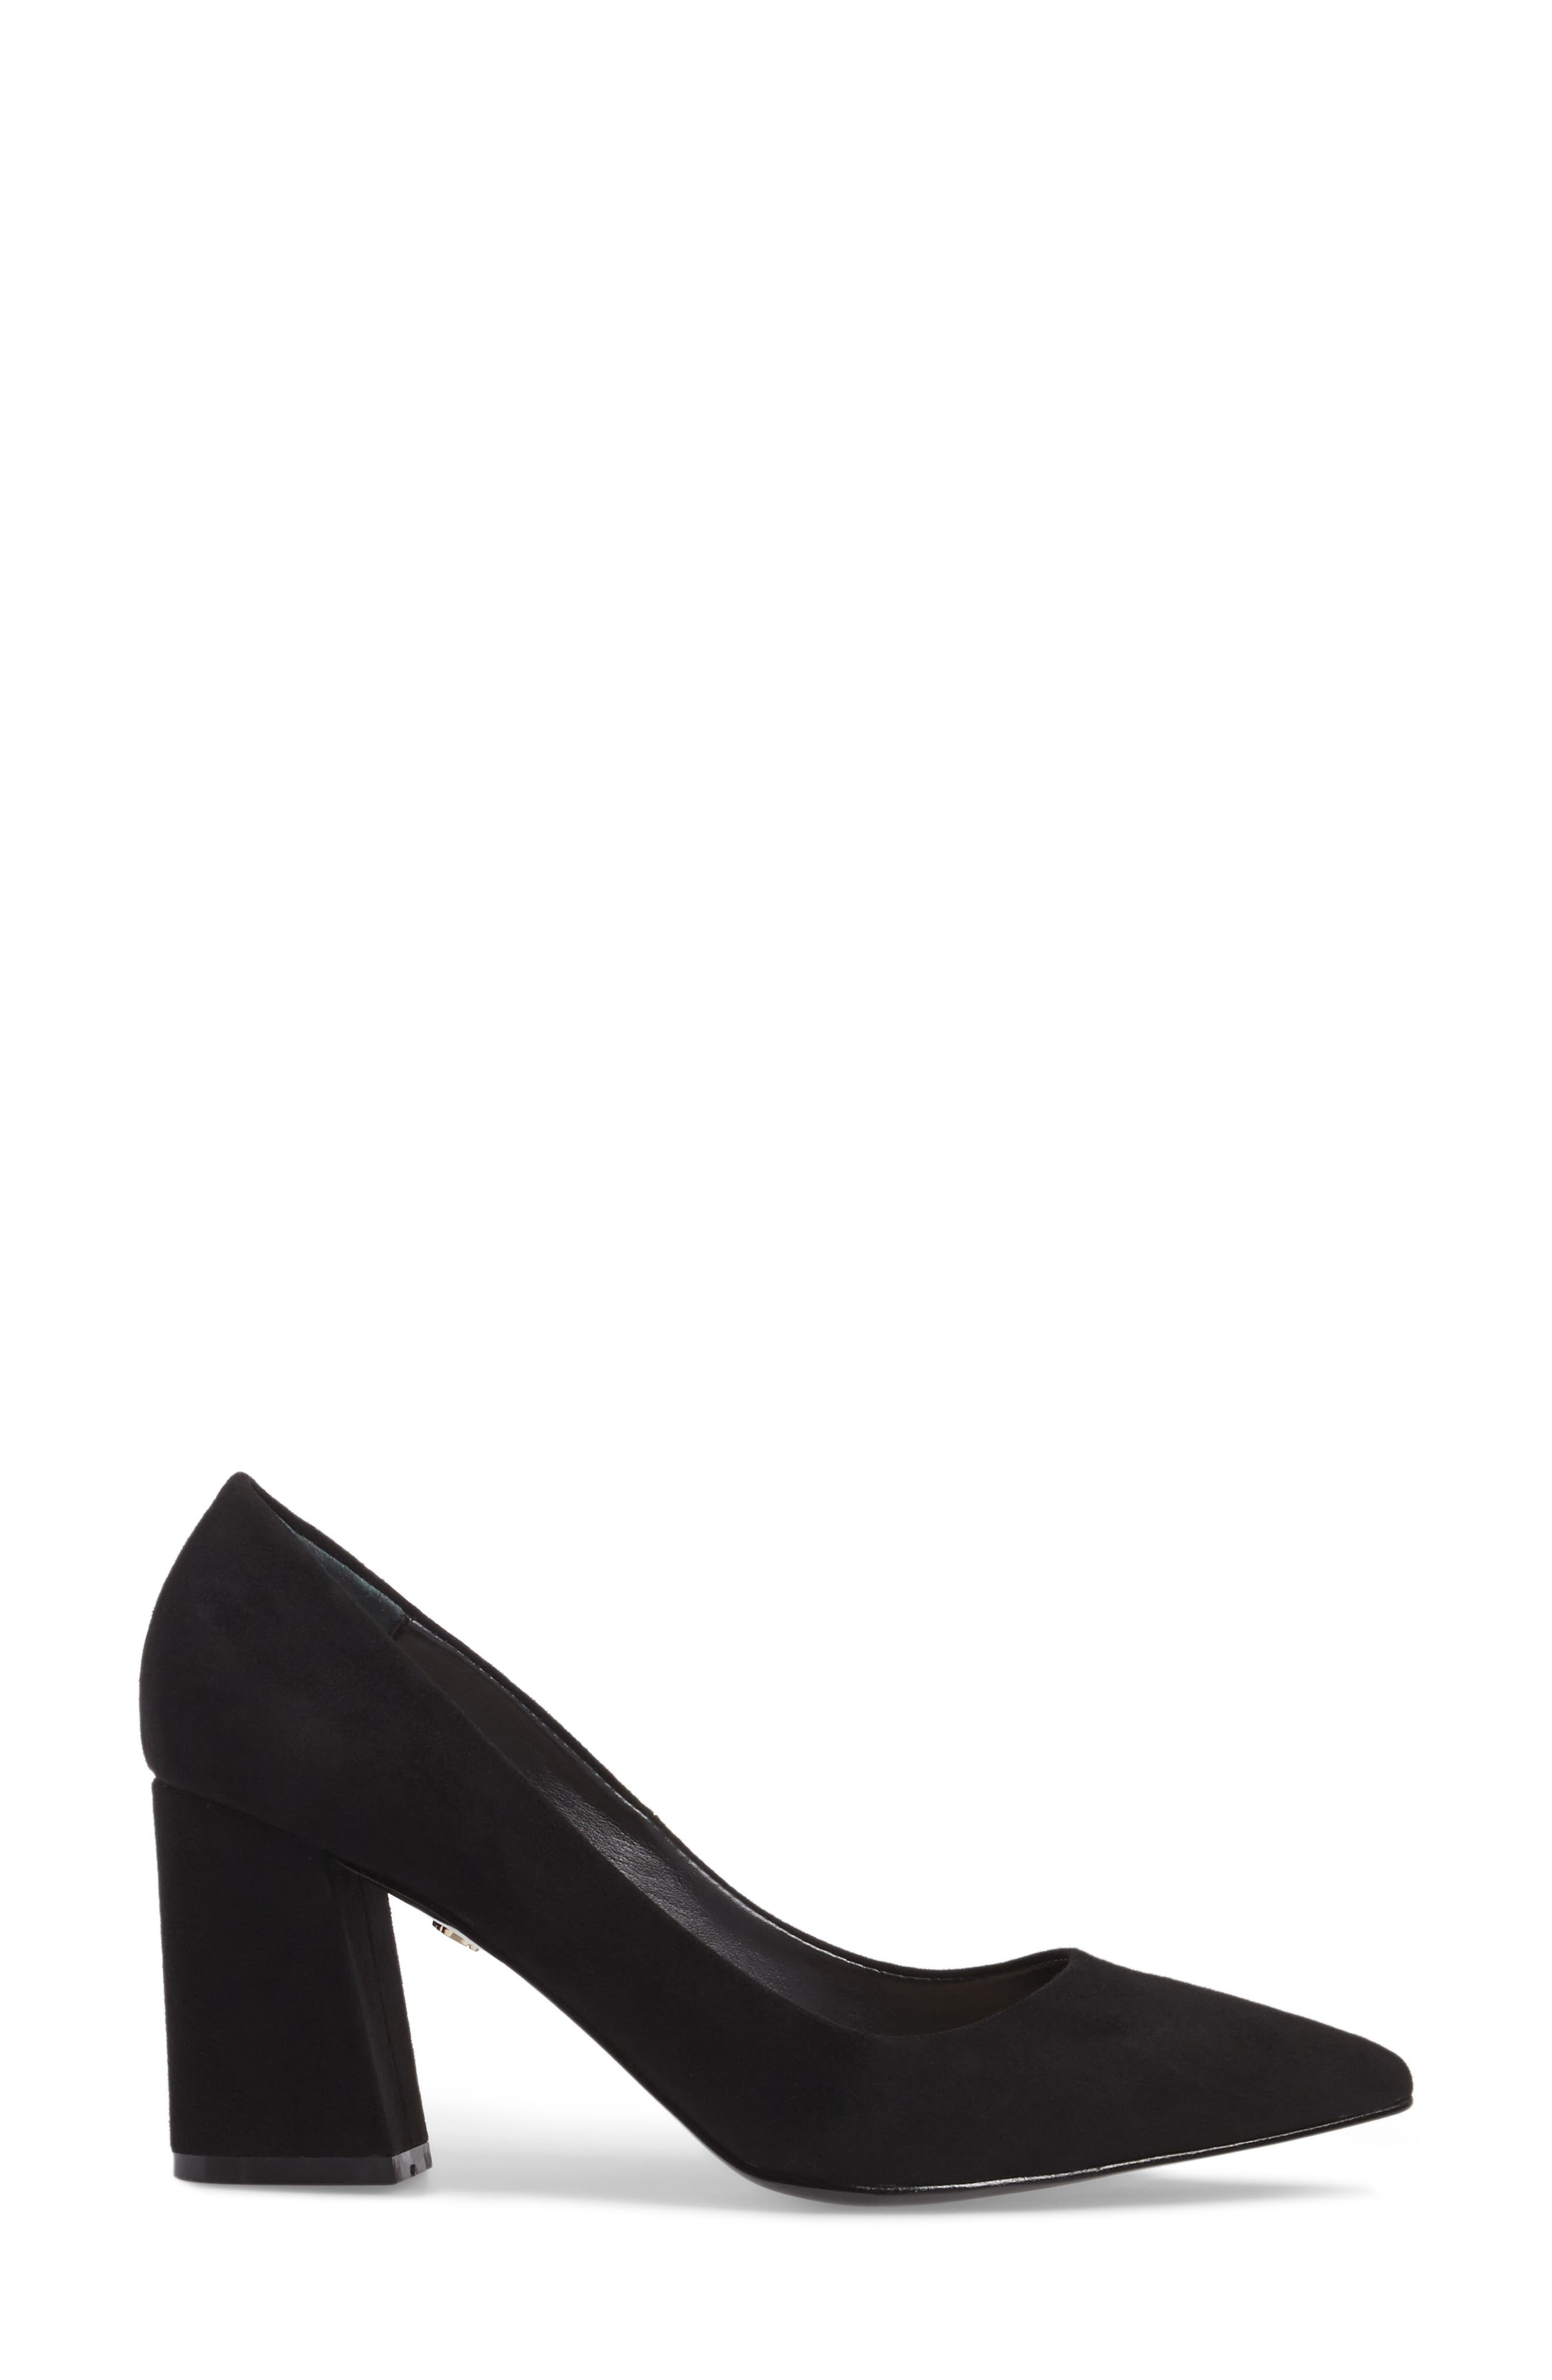 Tinsley Pointy Toe Pump,                             Alternate thumbnail 8, color,